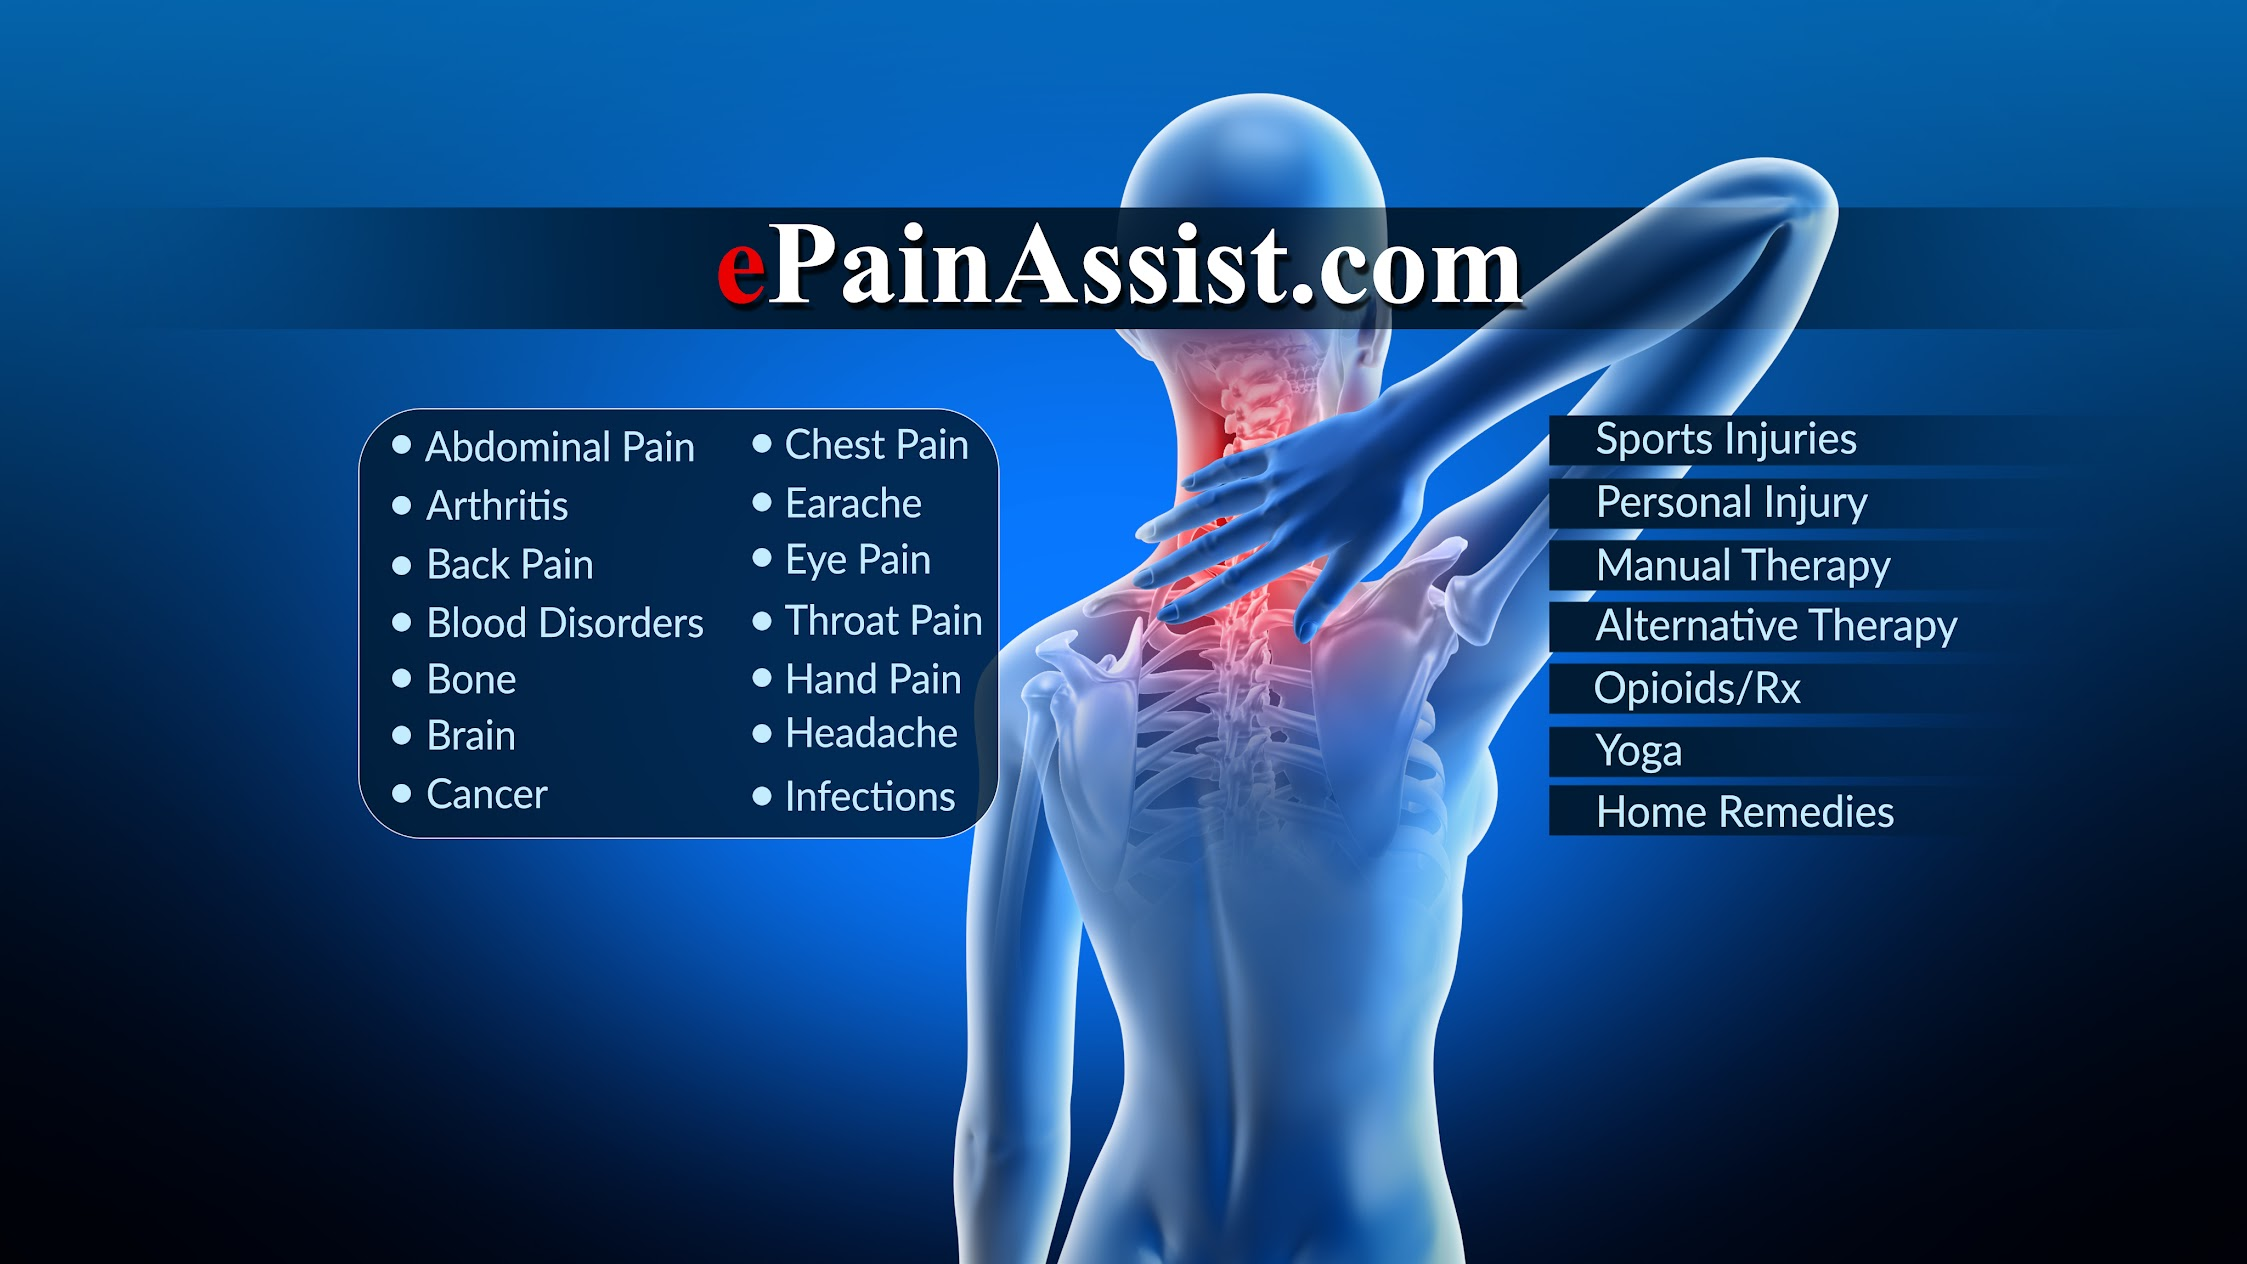 Pain Assist Inc